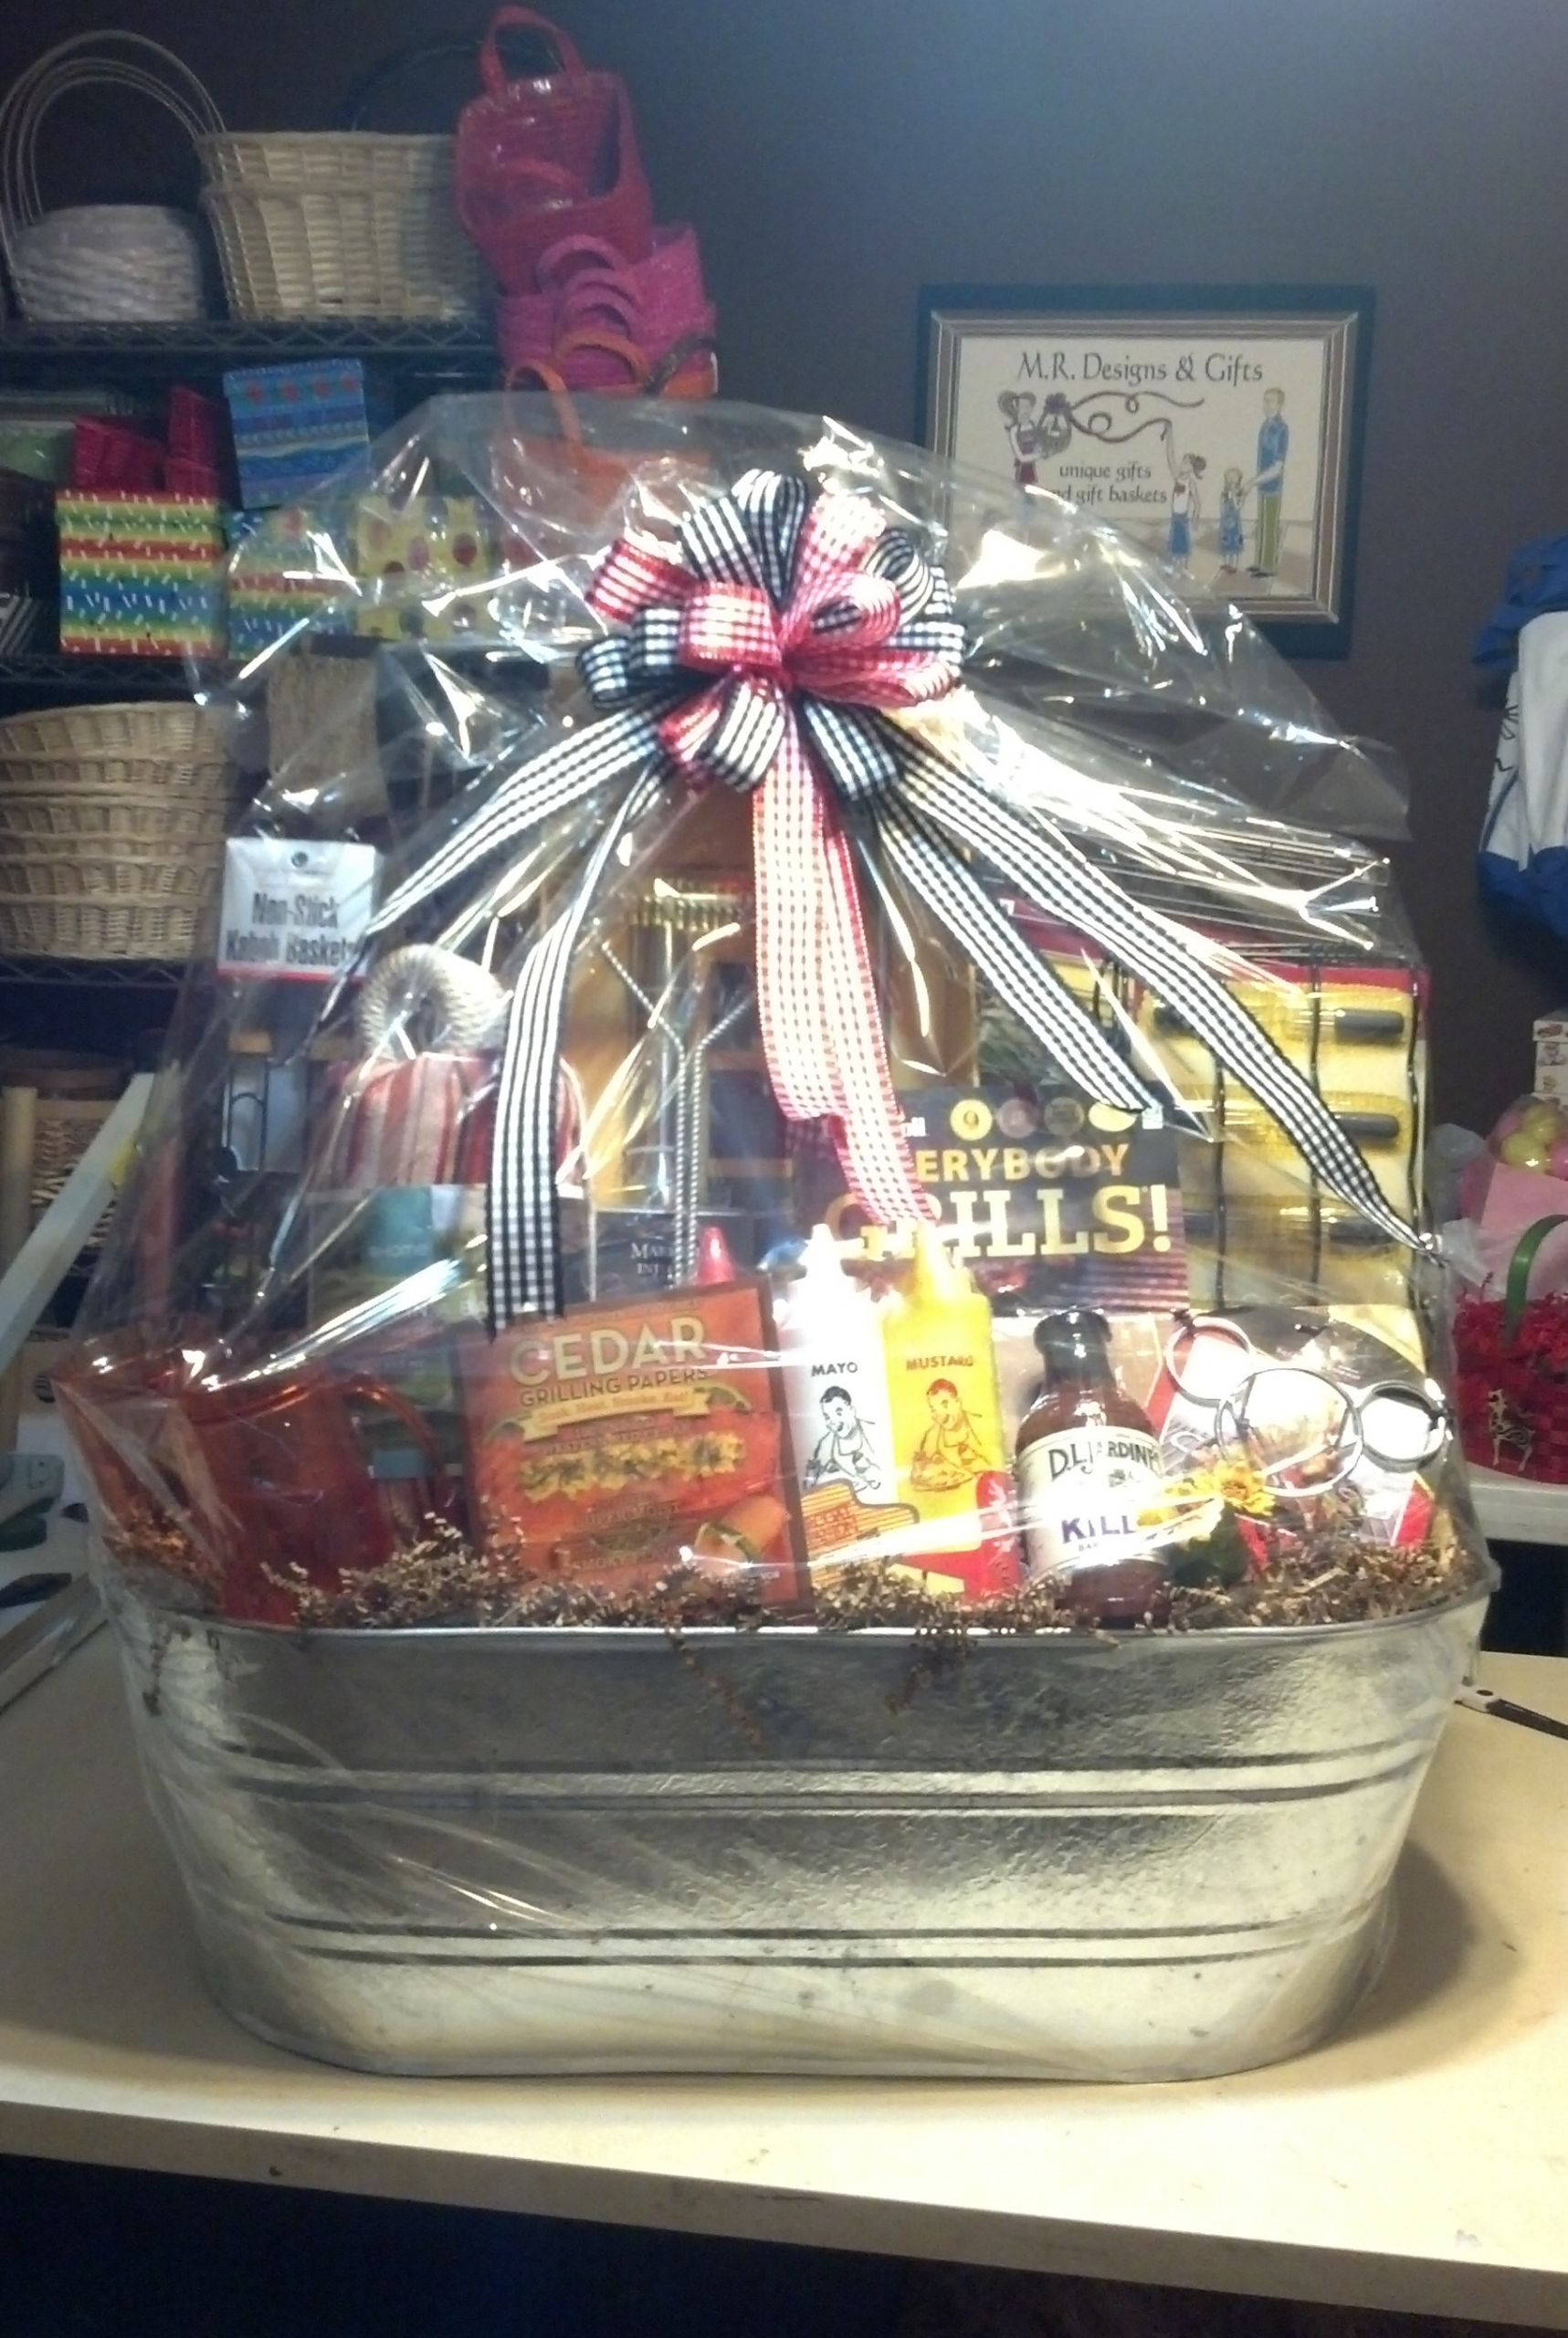 Gift Basket Theme Ideas Fundraiser  Special Event and Silent Auction Gift Basket Ideas by M R